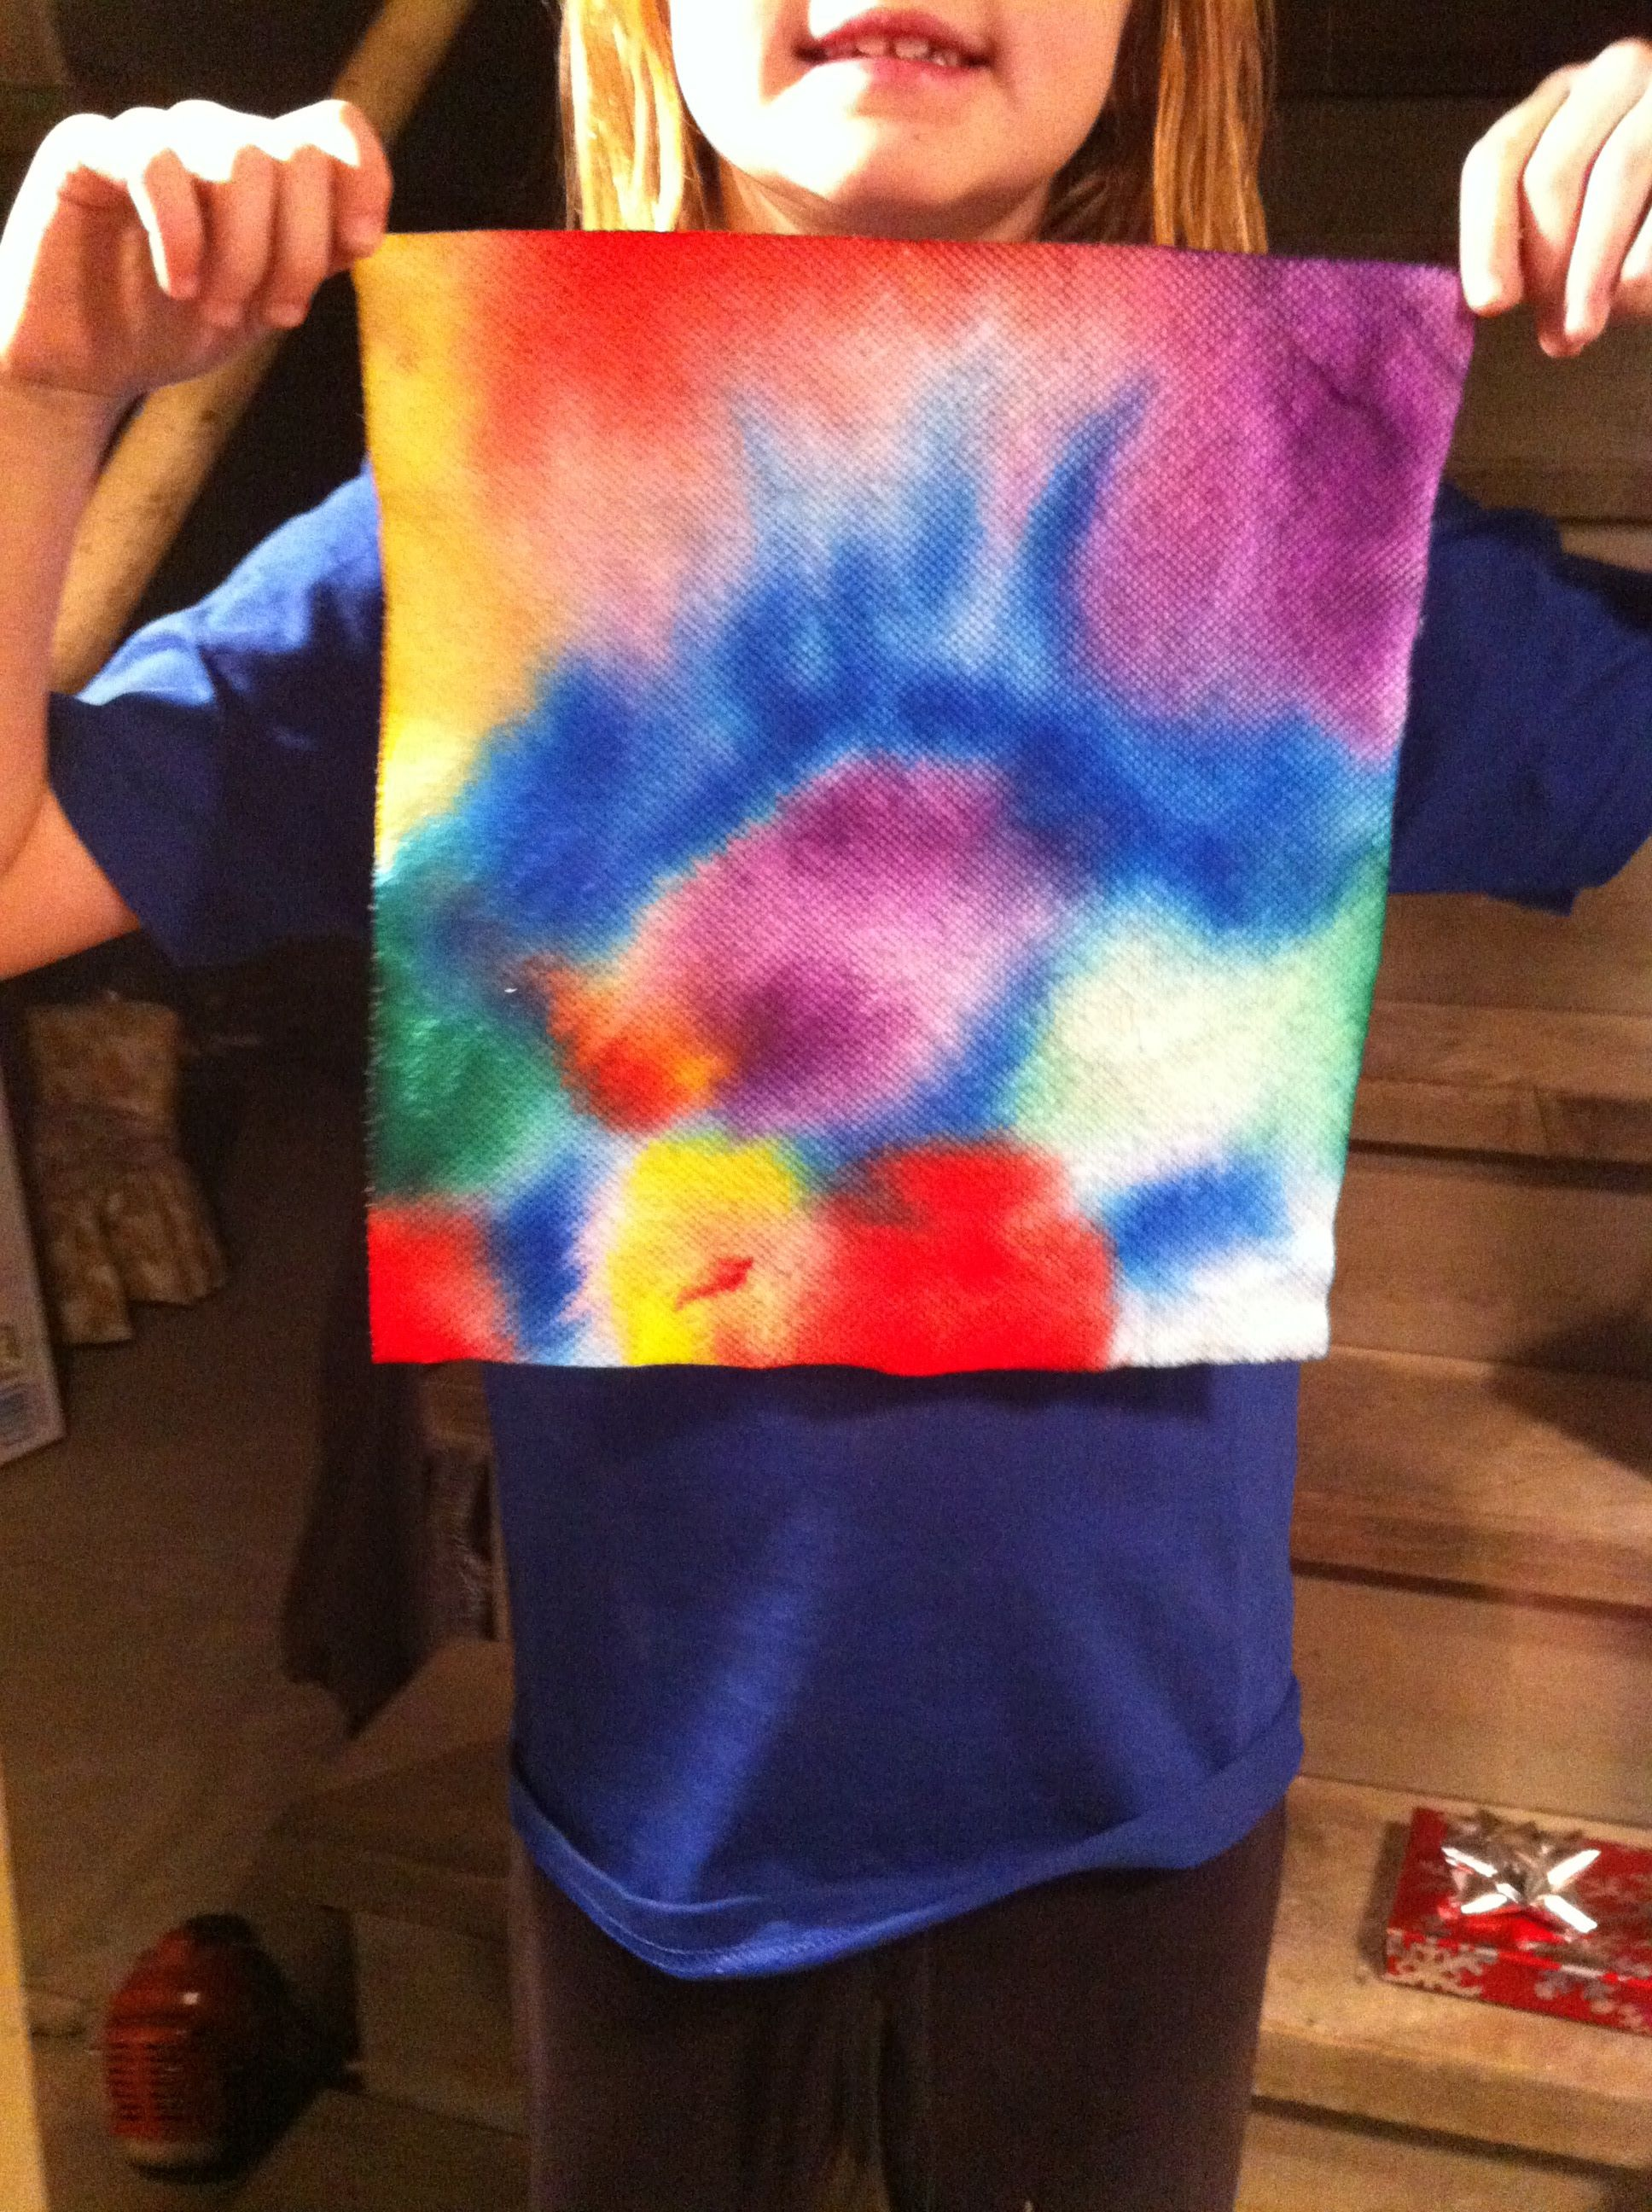 Paper Towel Paint With Marker Then Spray With Water From